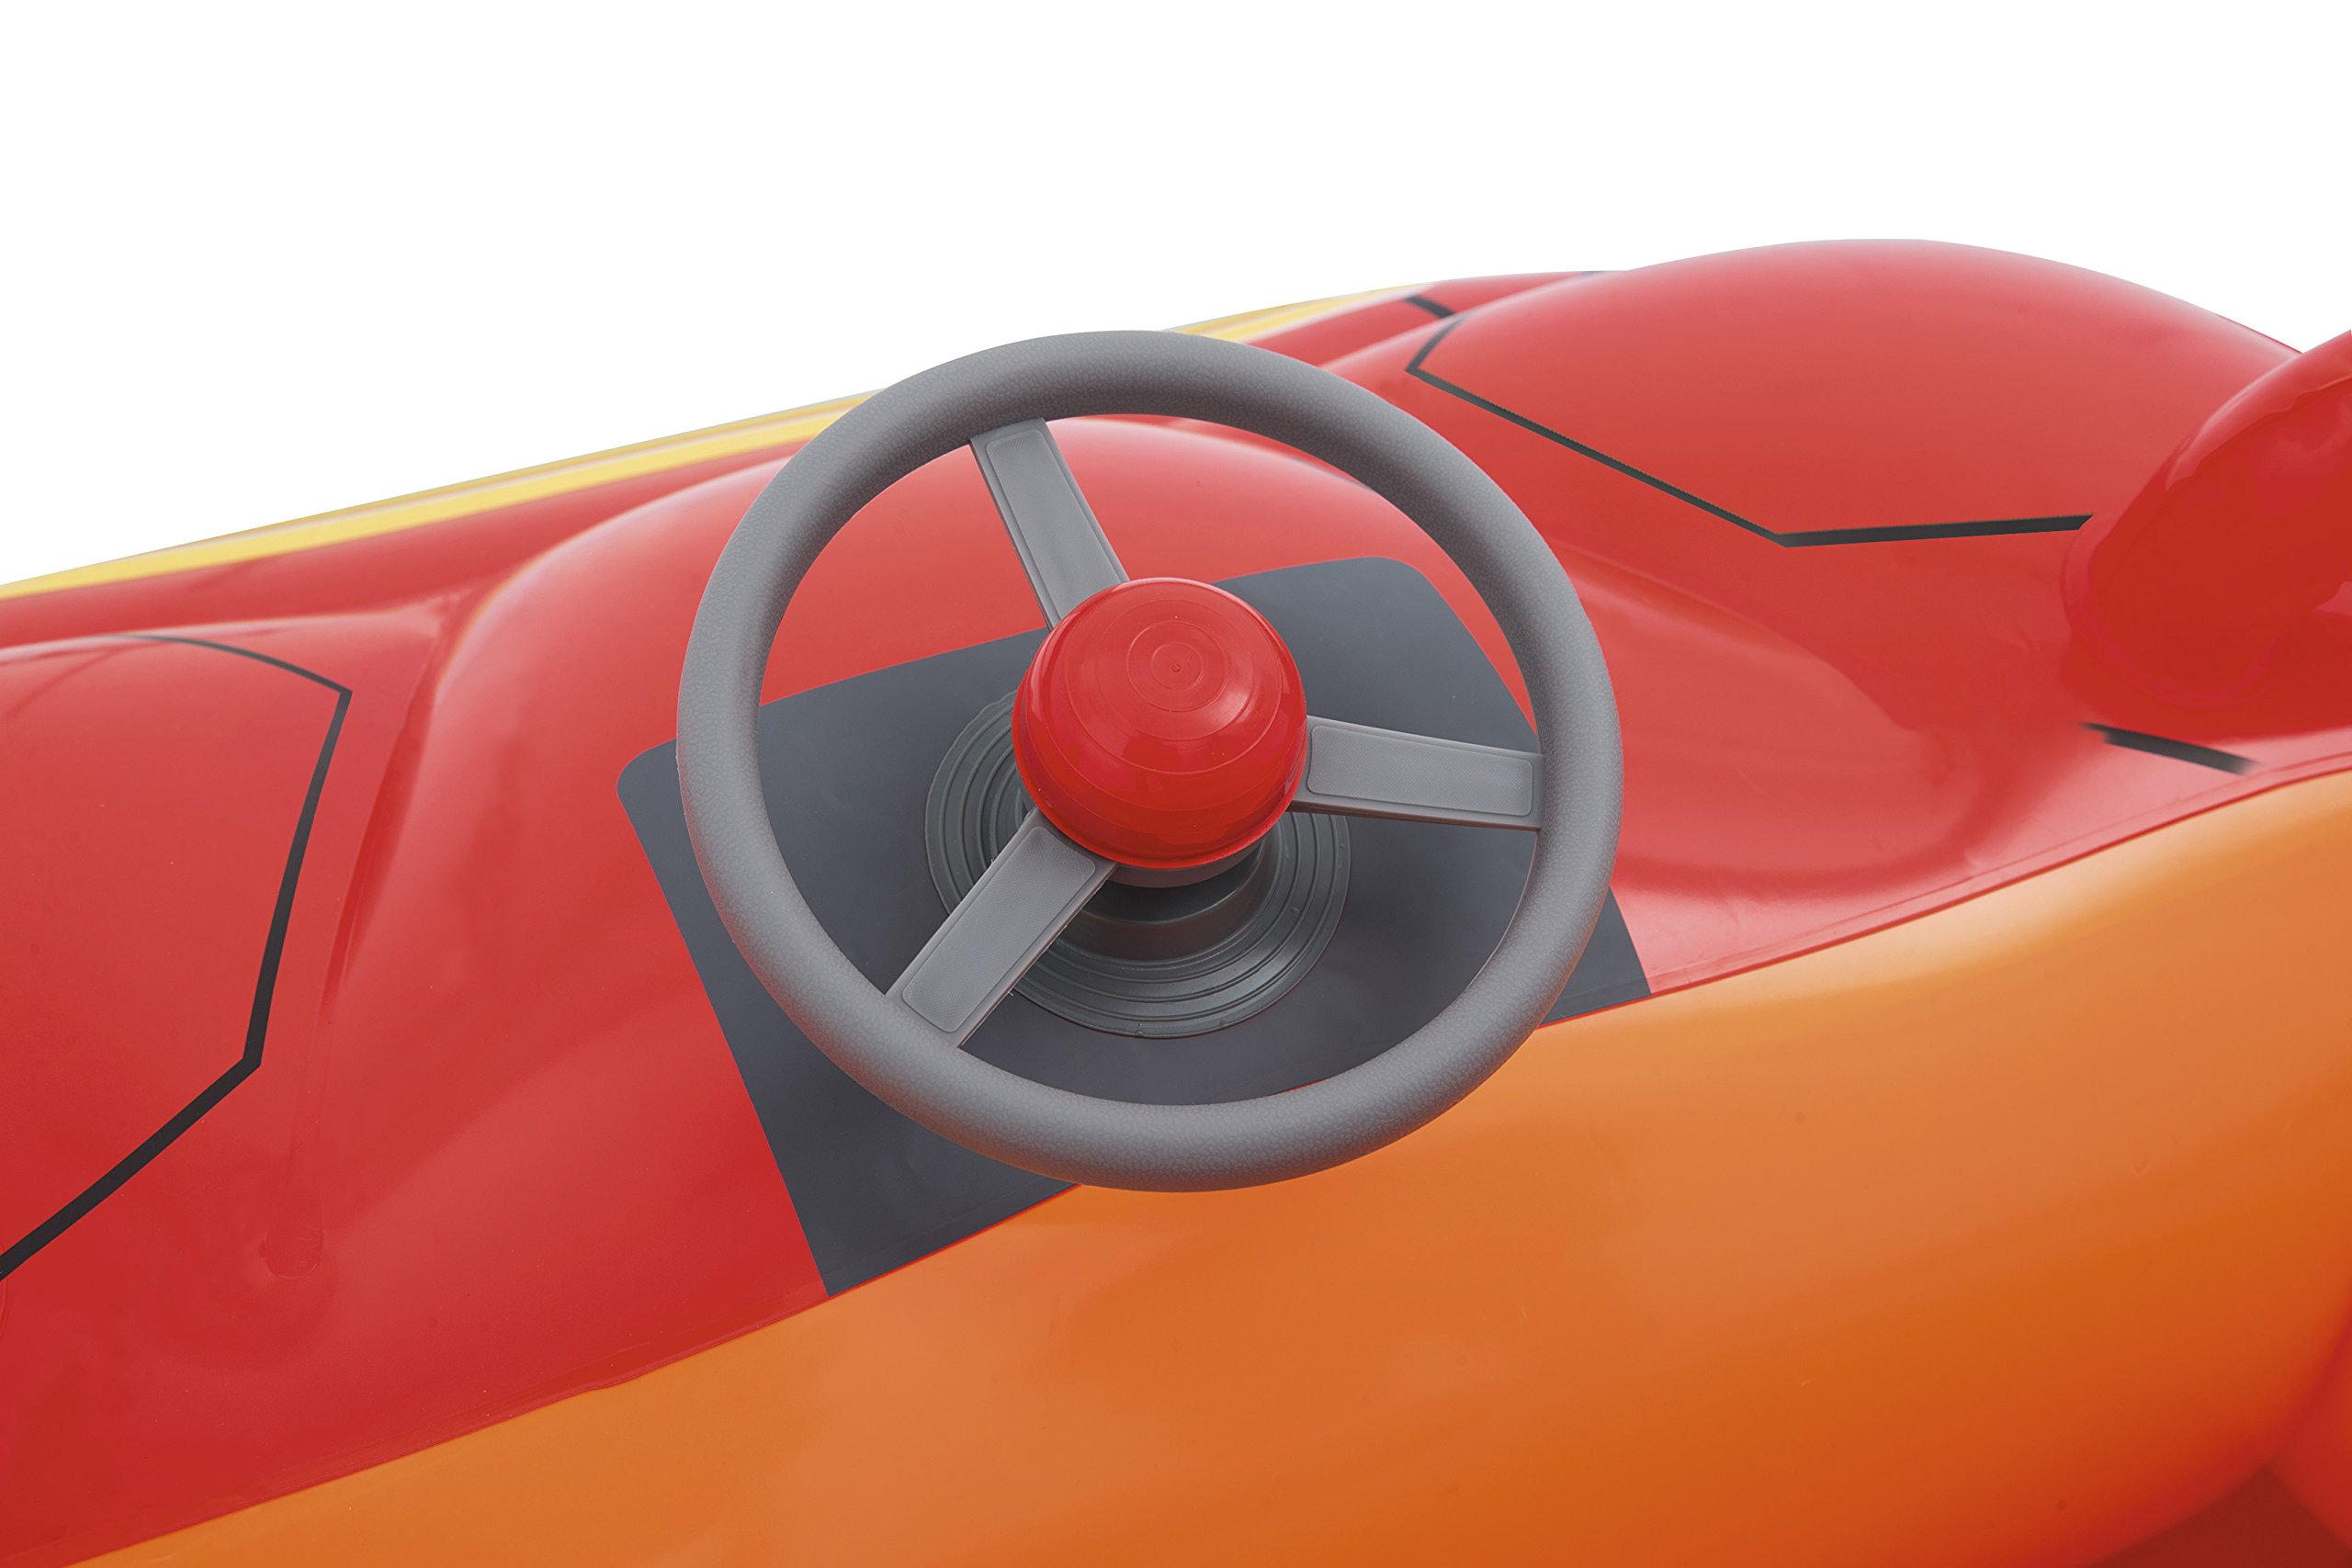 Bestway Hot Wheels Children's Inflatable Car Ball Pit, Includes 25 Balls by Bestway (Image #7)